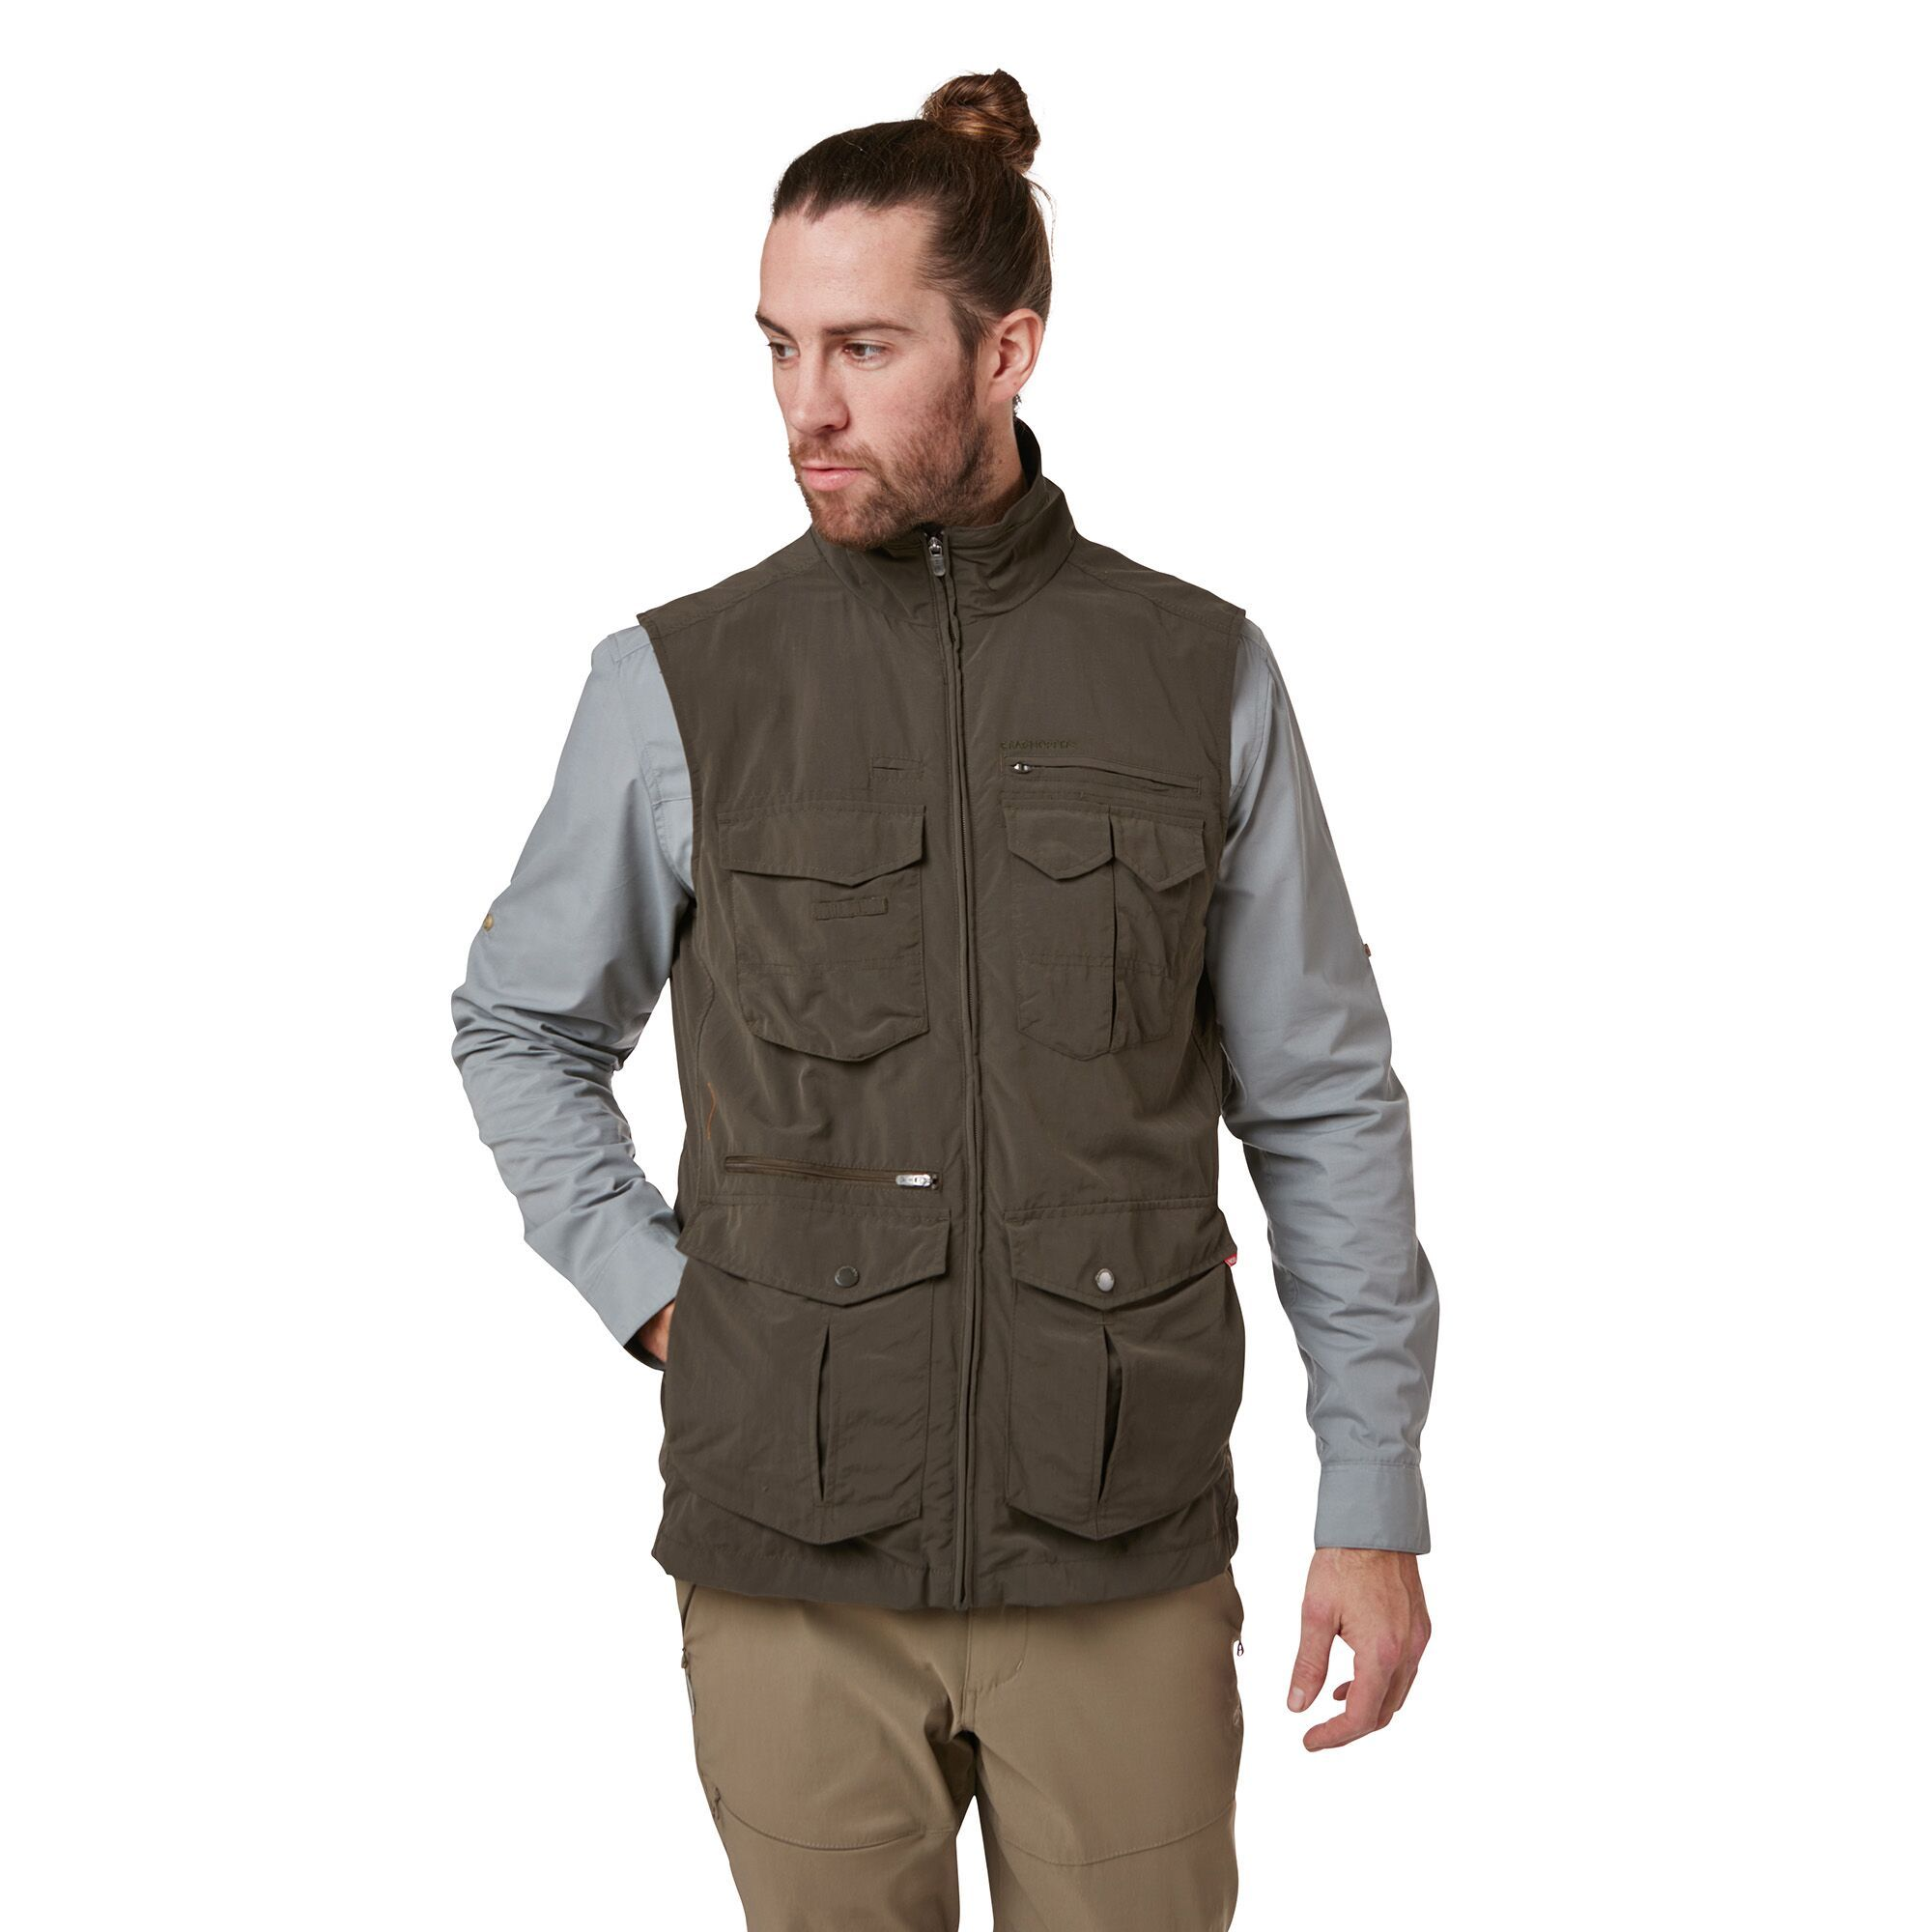 Pebble All Sizes Craghoppers Nosilife Adventure Jacket Body Warmer